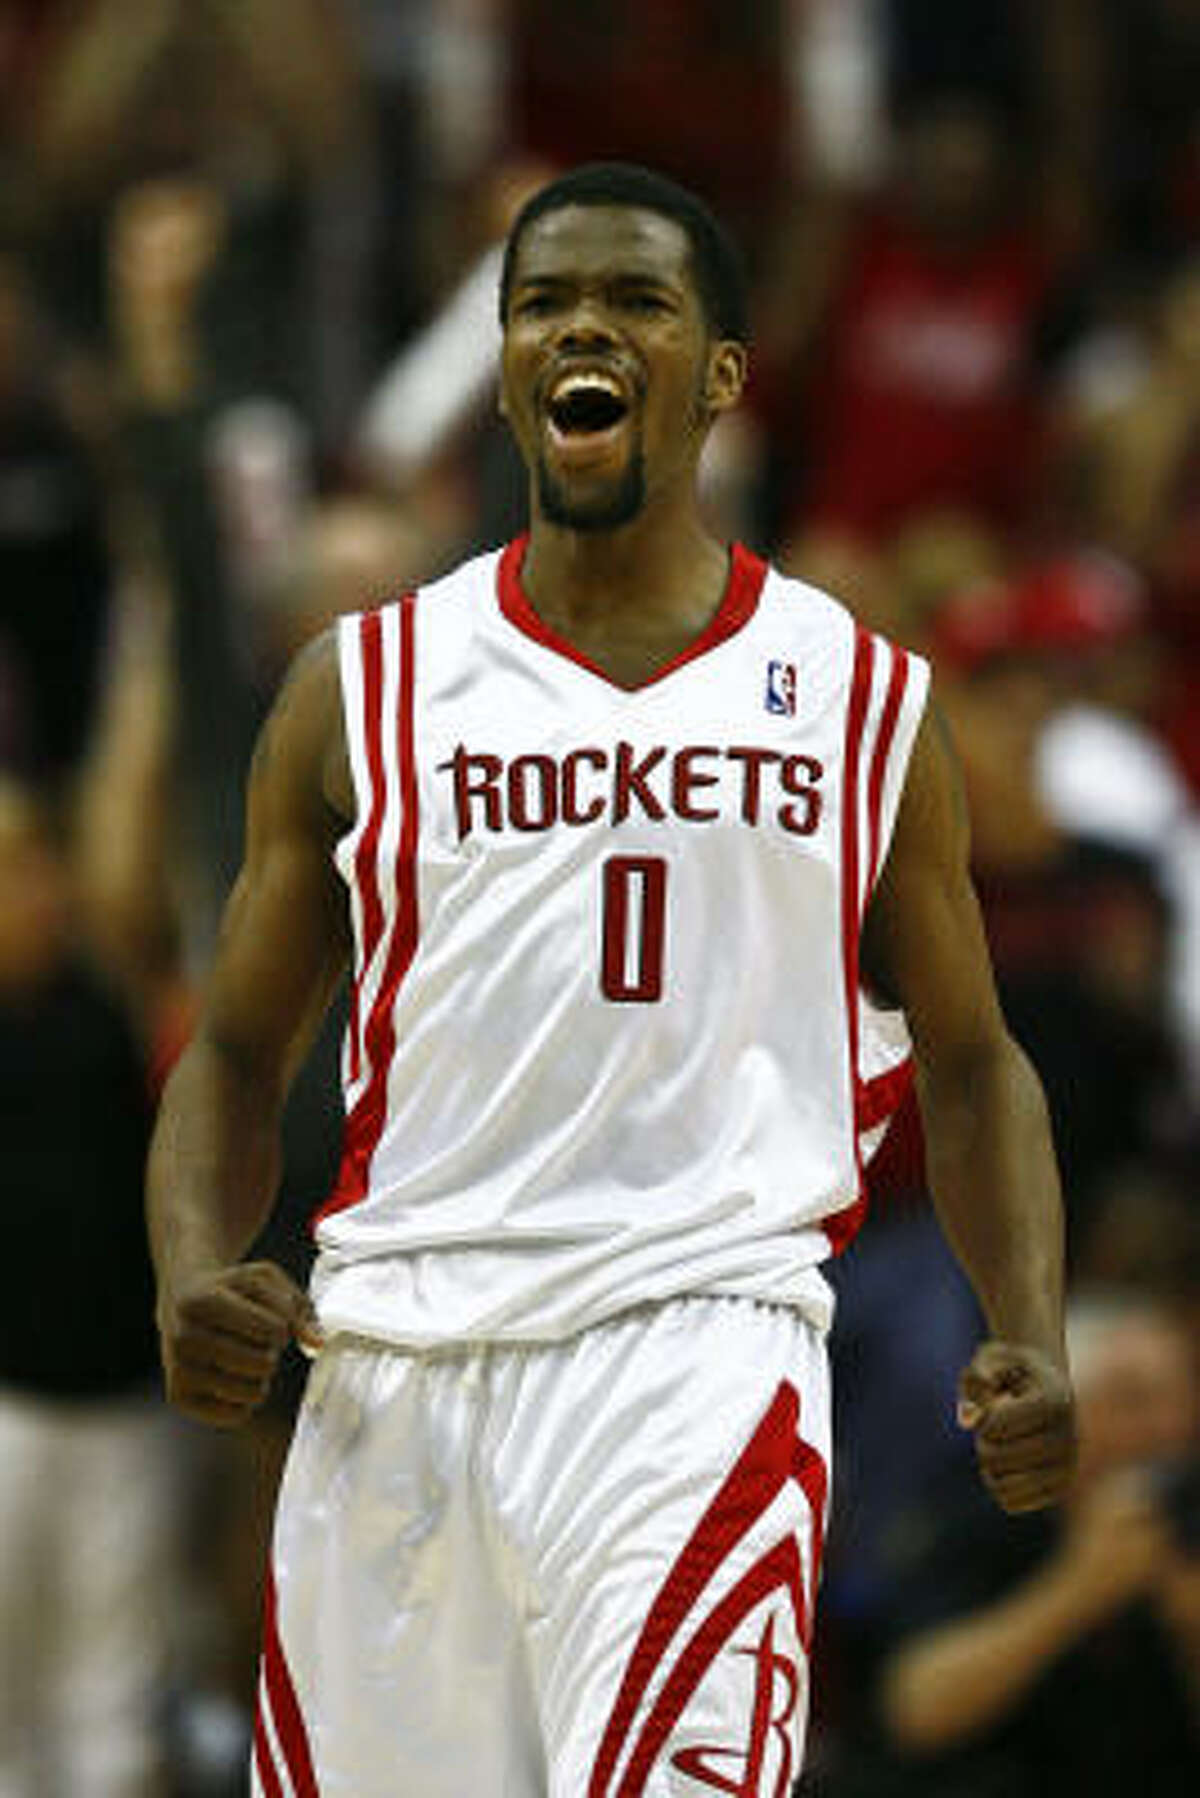 Rockets guard Aaron Brooks scored 31 points, including his game-winning jumper from 19 feet.